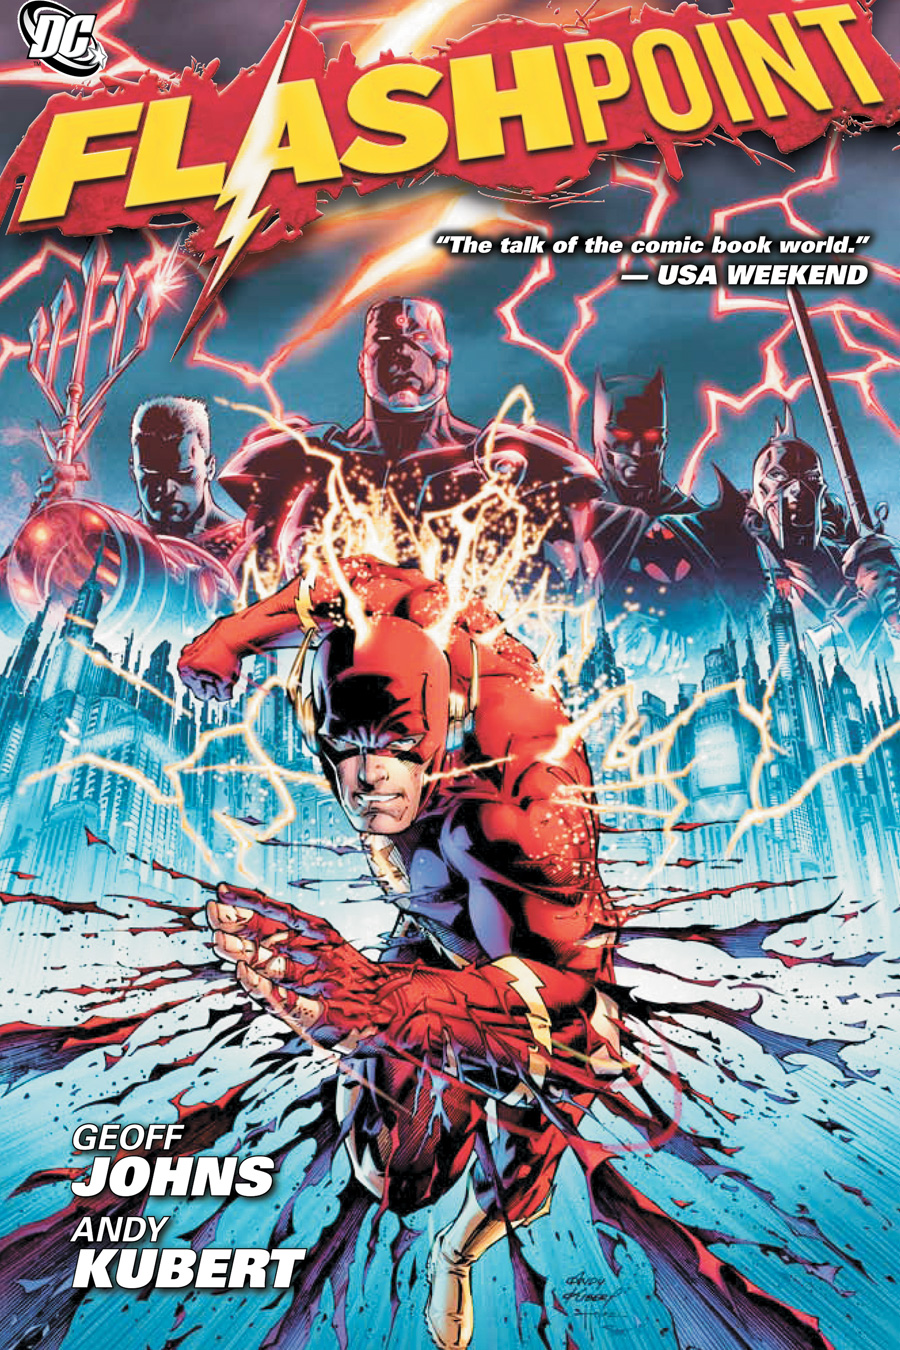 The cover of the FlashPoint Comic series which started the New 52